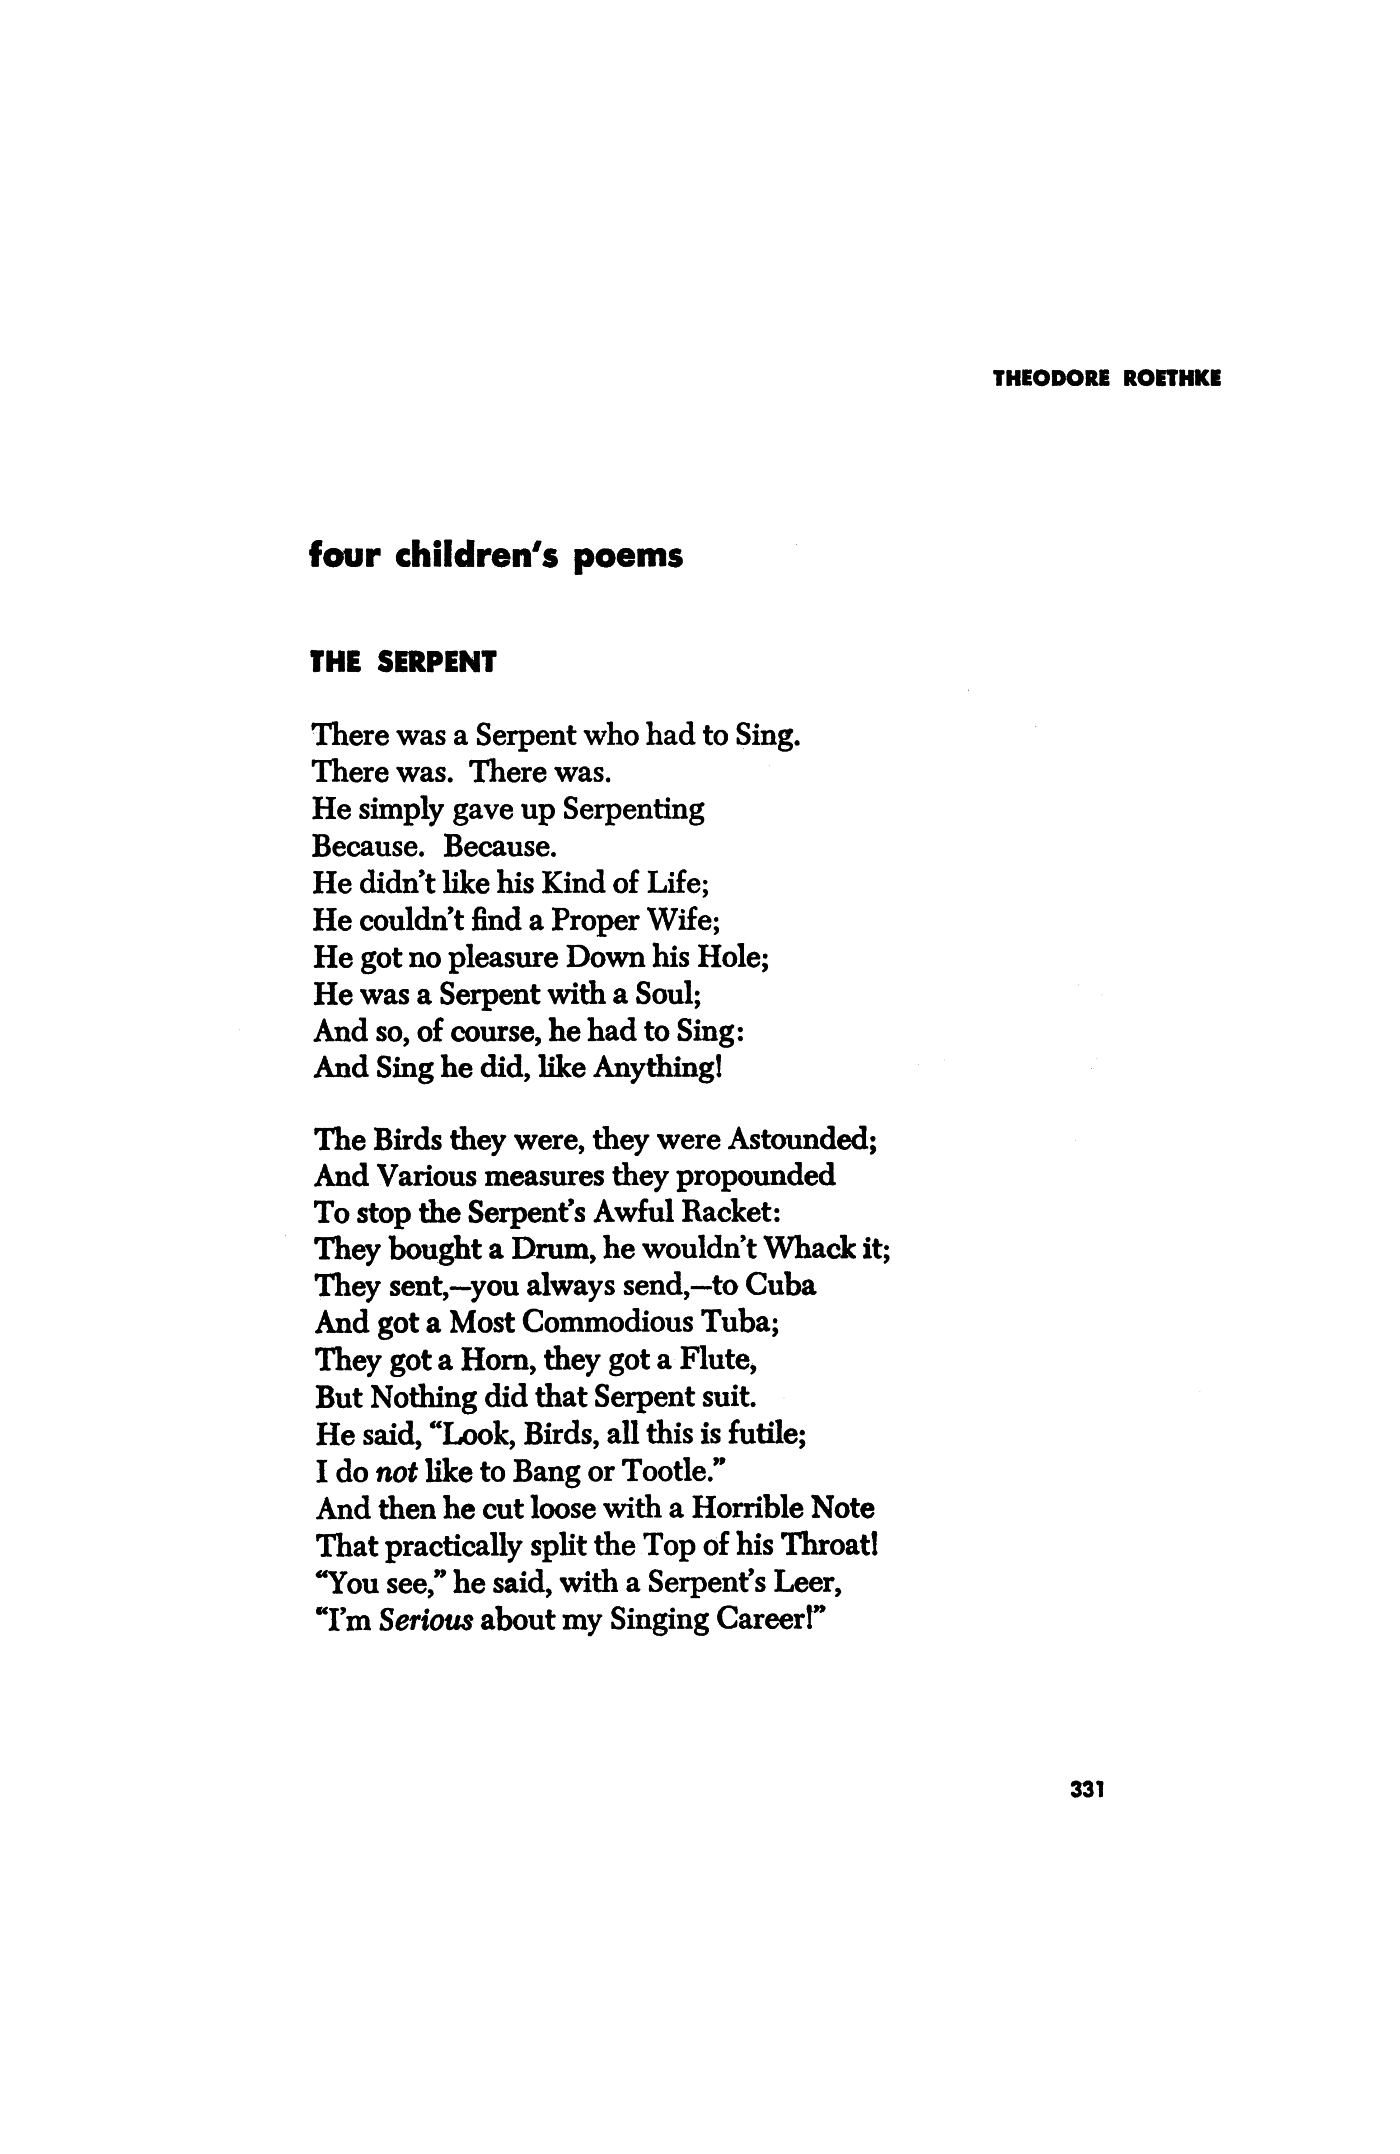 the serpent by theodore roethke